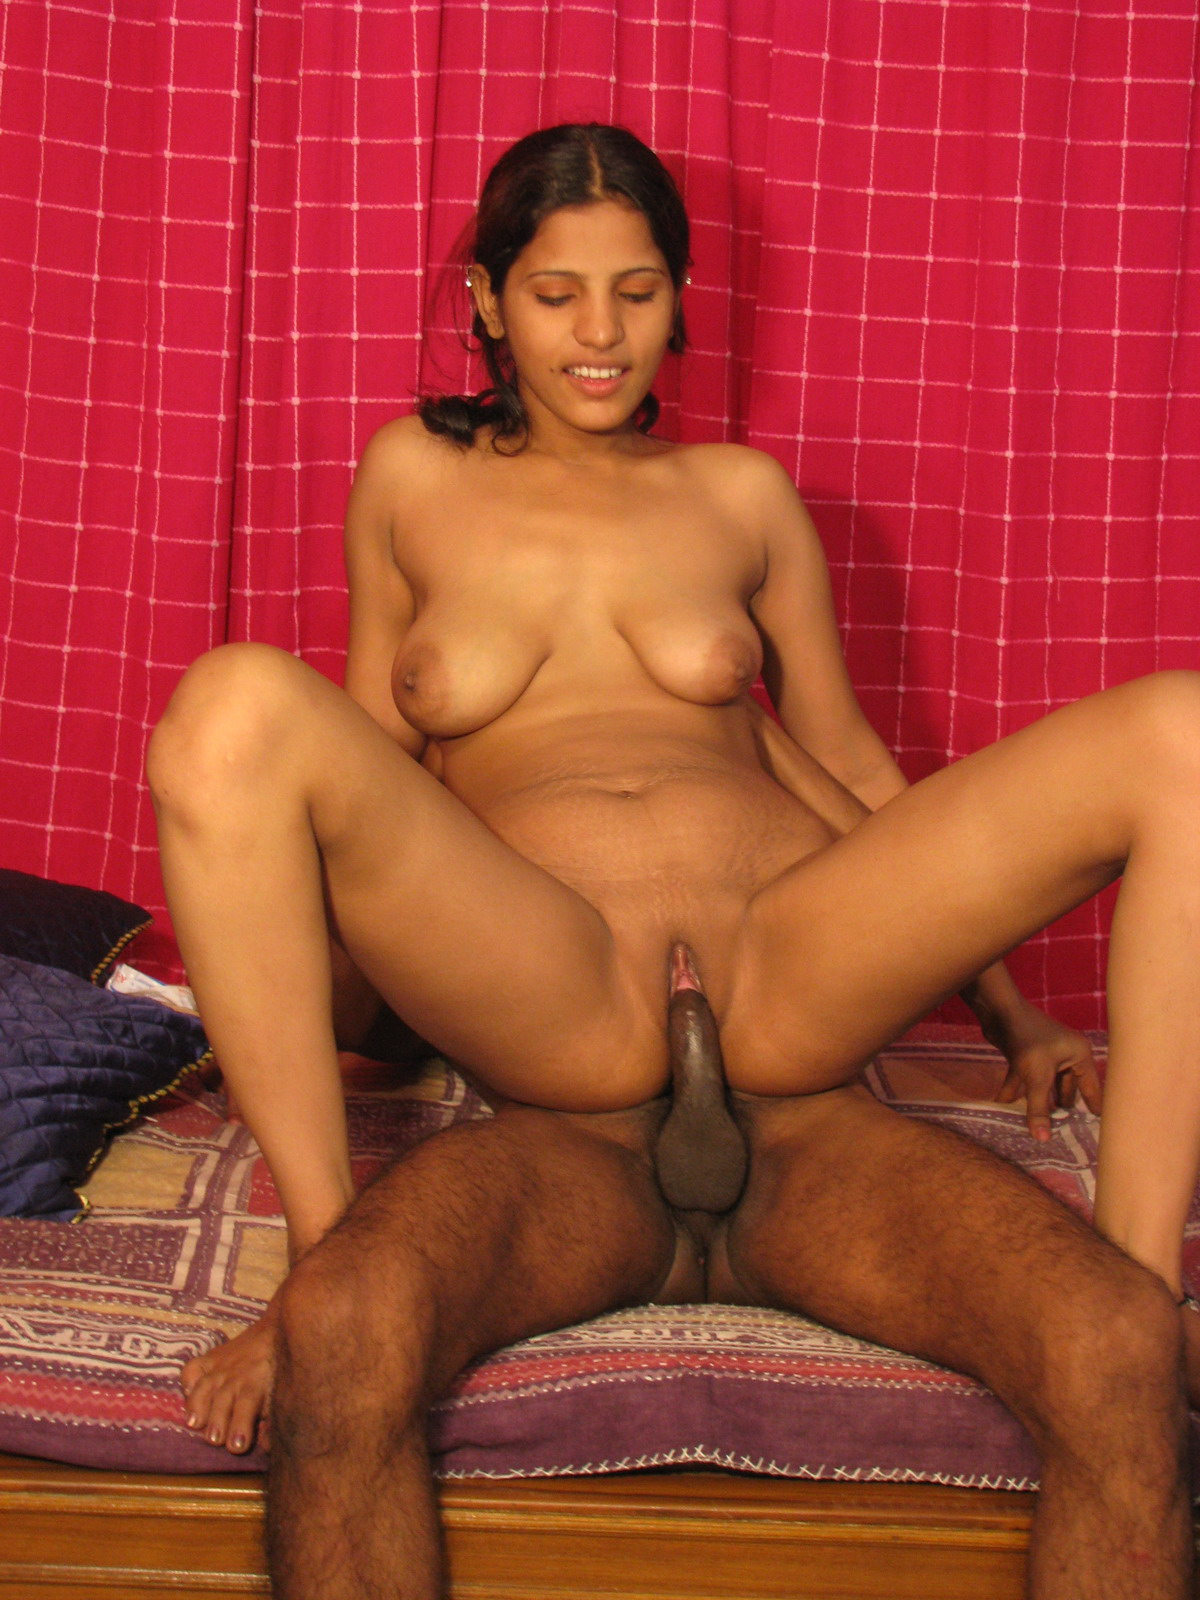 Fucking bengali hard, bearing material strip